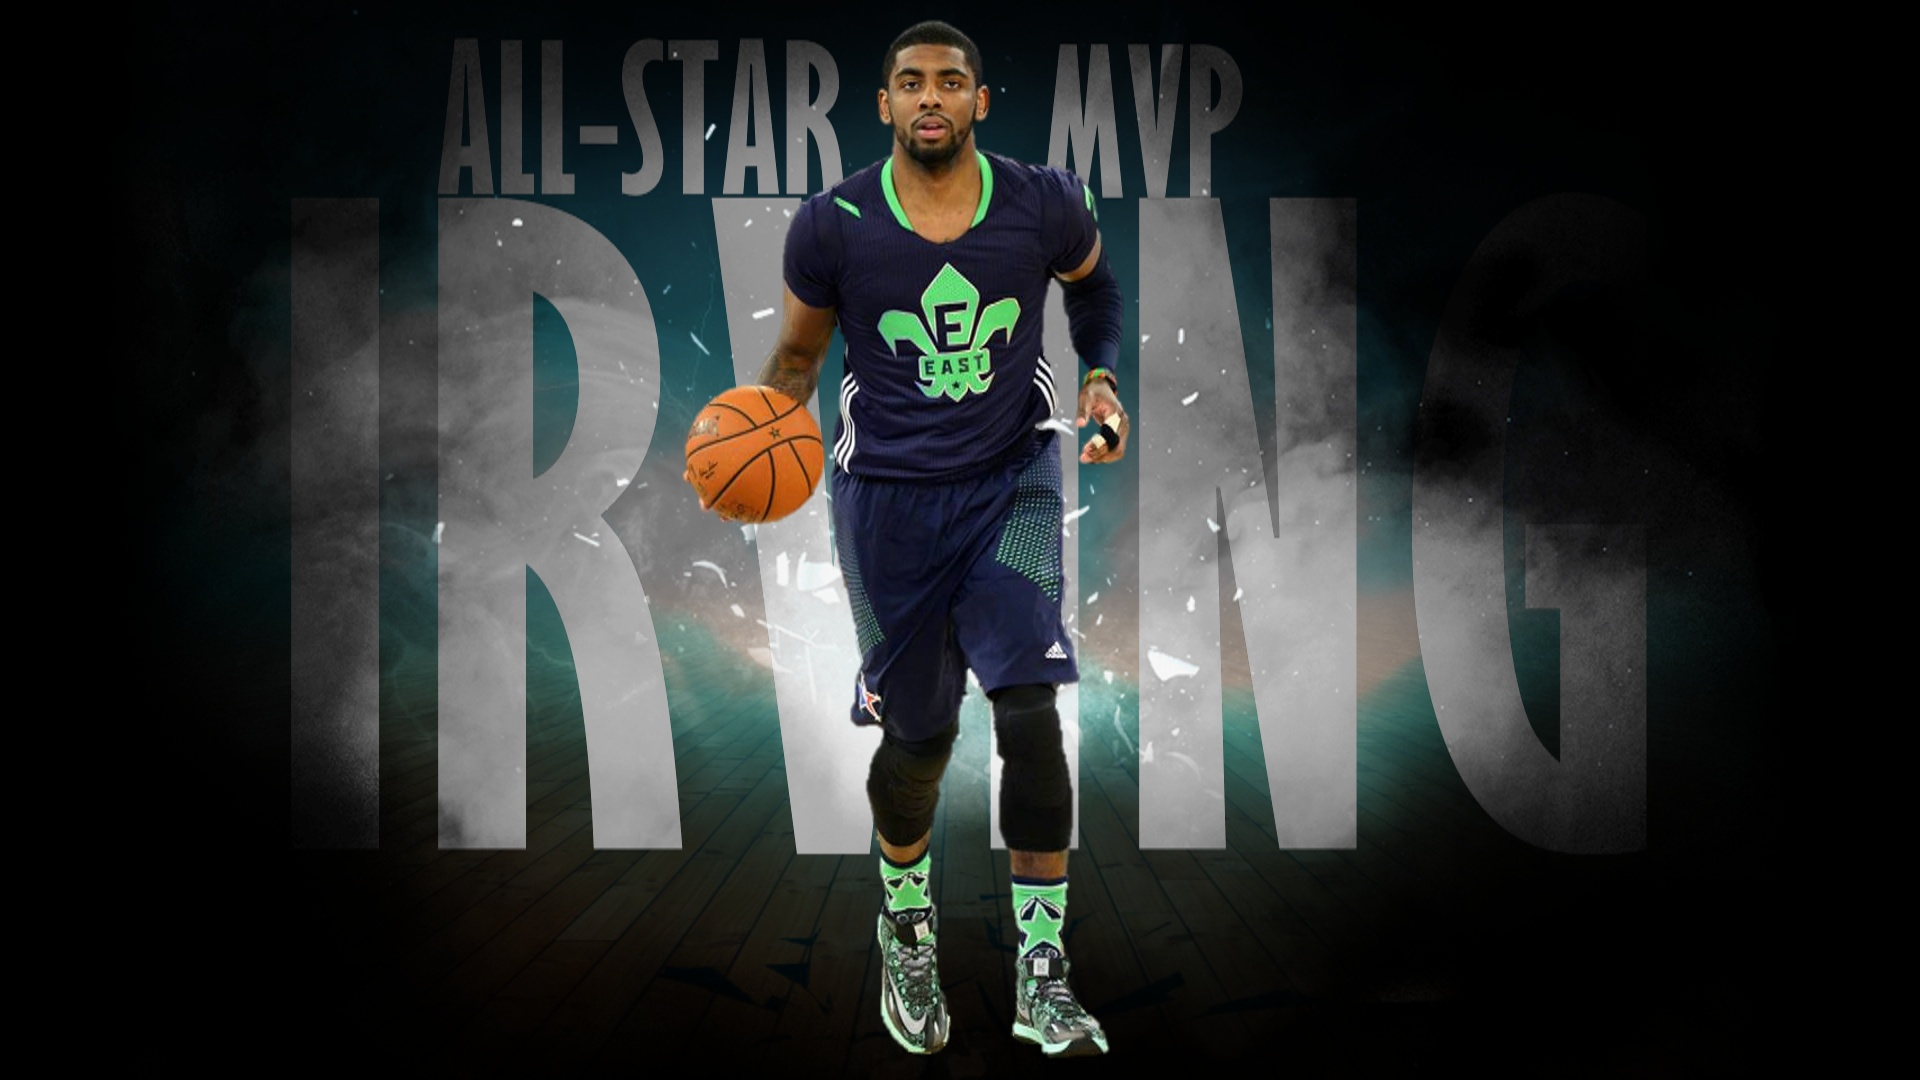 Kyrie Irving Wallpaper | Kyrie Irving | Pinterest | Wallpapers ...